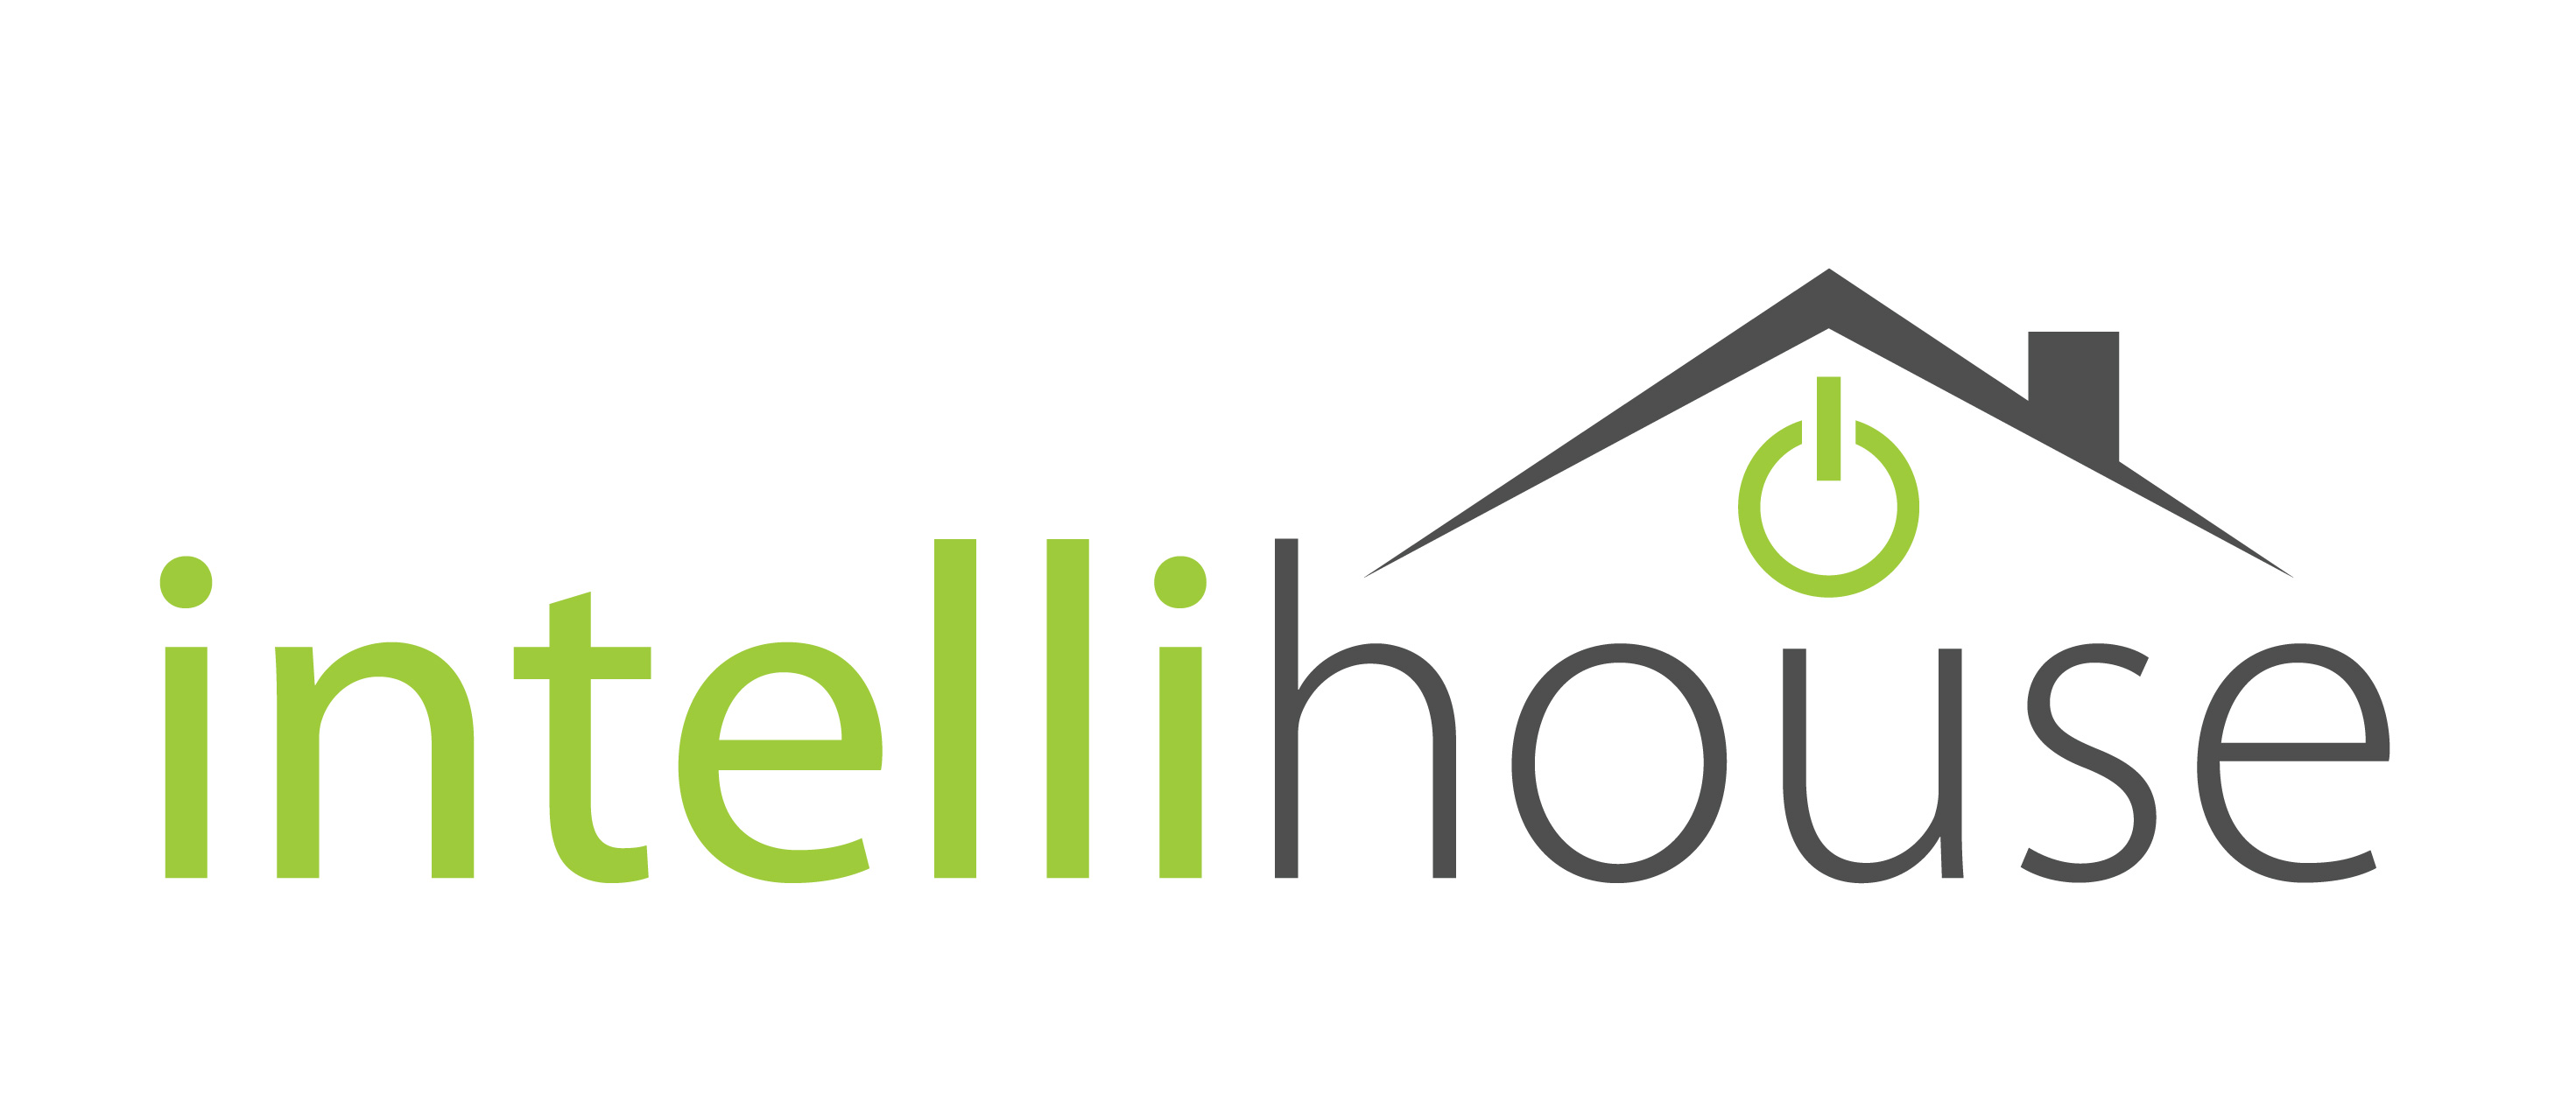 Check Out This Design For Intellihouse By MycroBurst.com - 2942x1258 ...